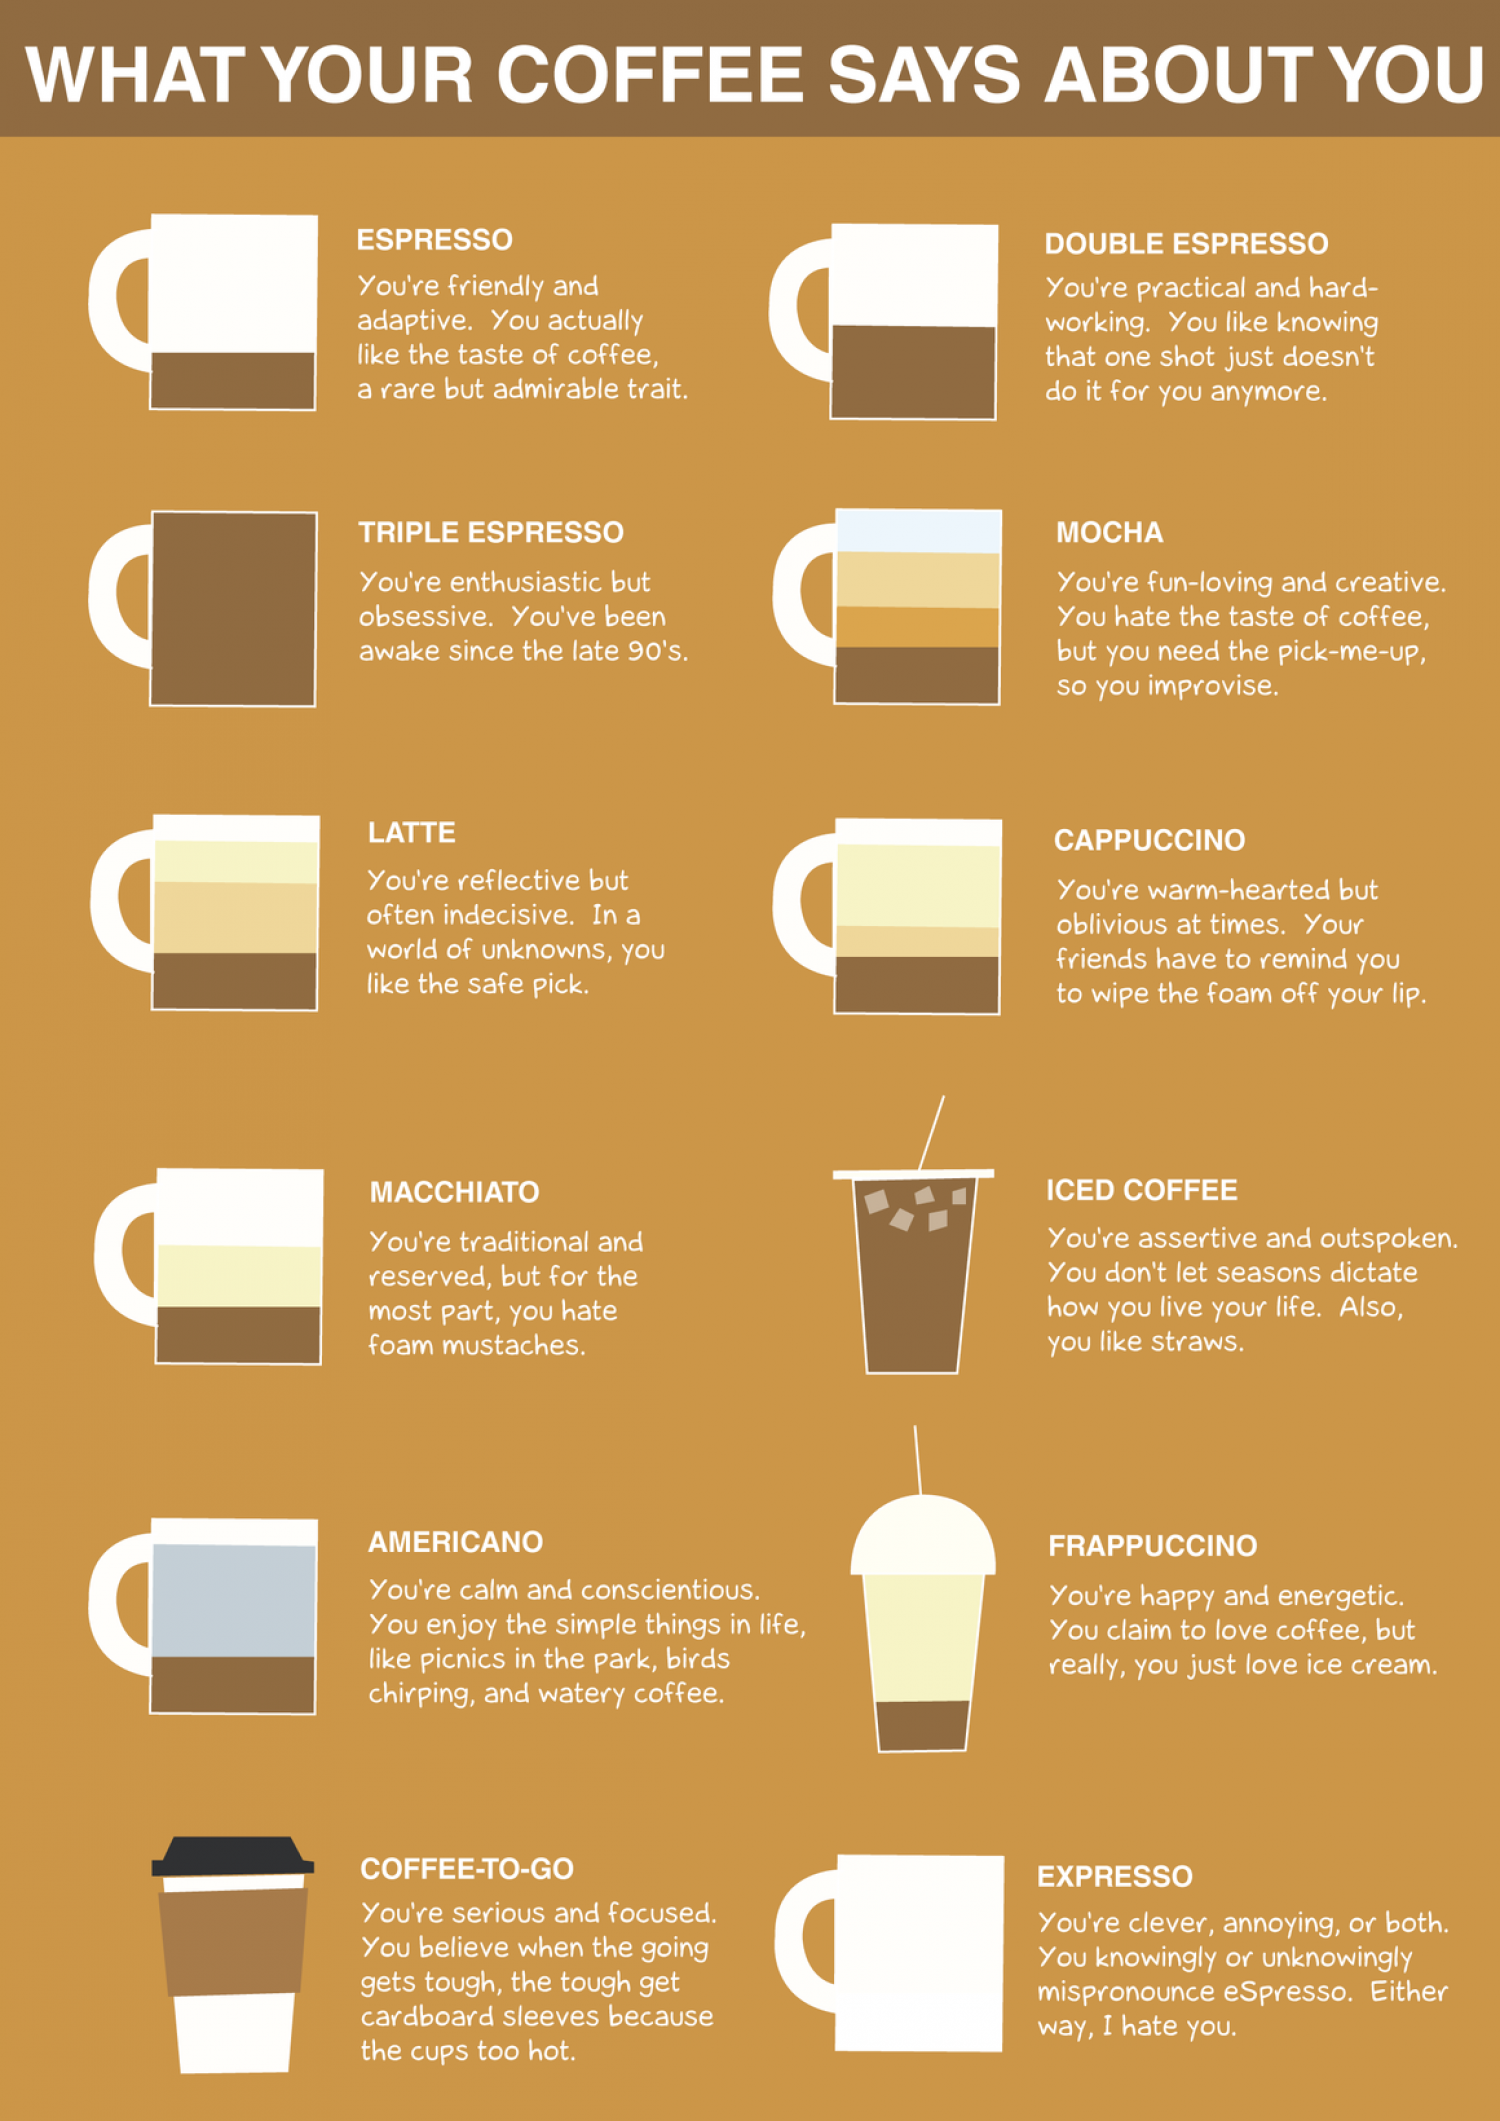 Coffee and Personality Traits Infographic